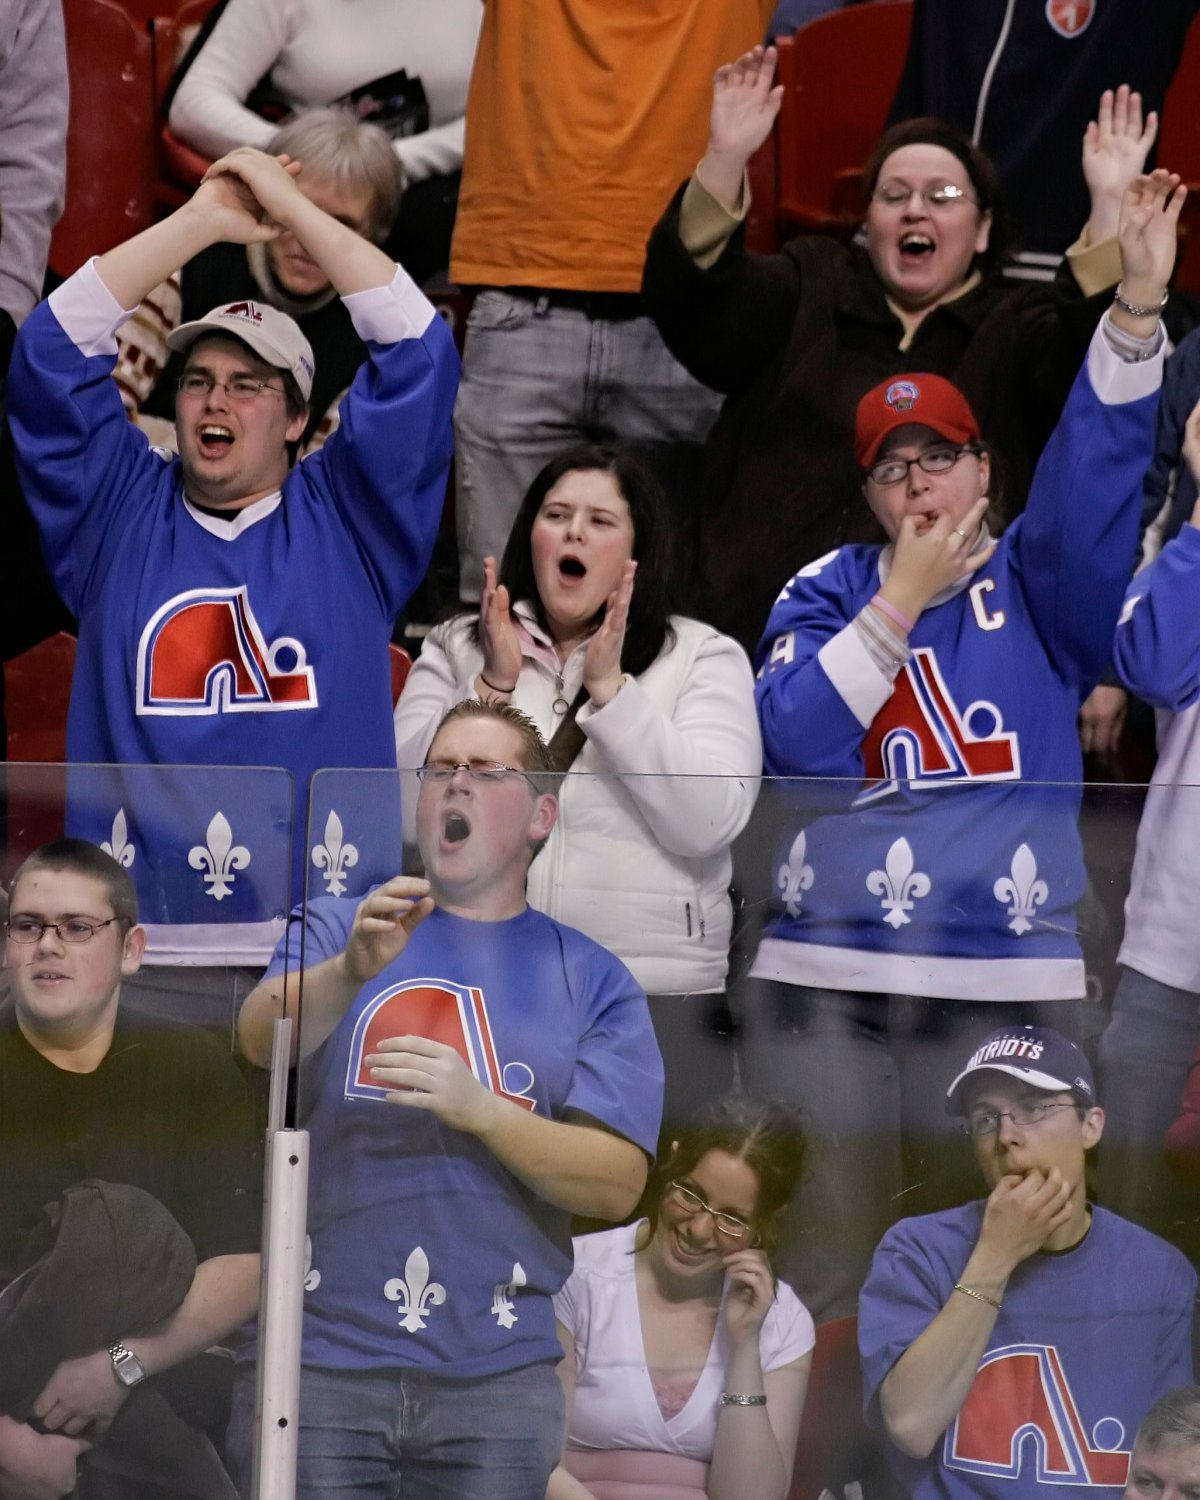 The Quebec Nordiques relocated to Denver and became the Colorado Avalanche.